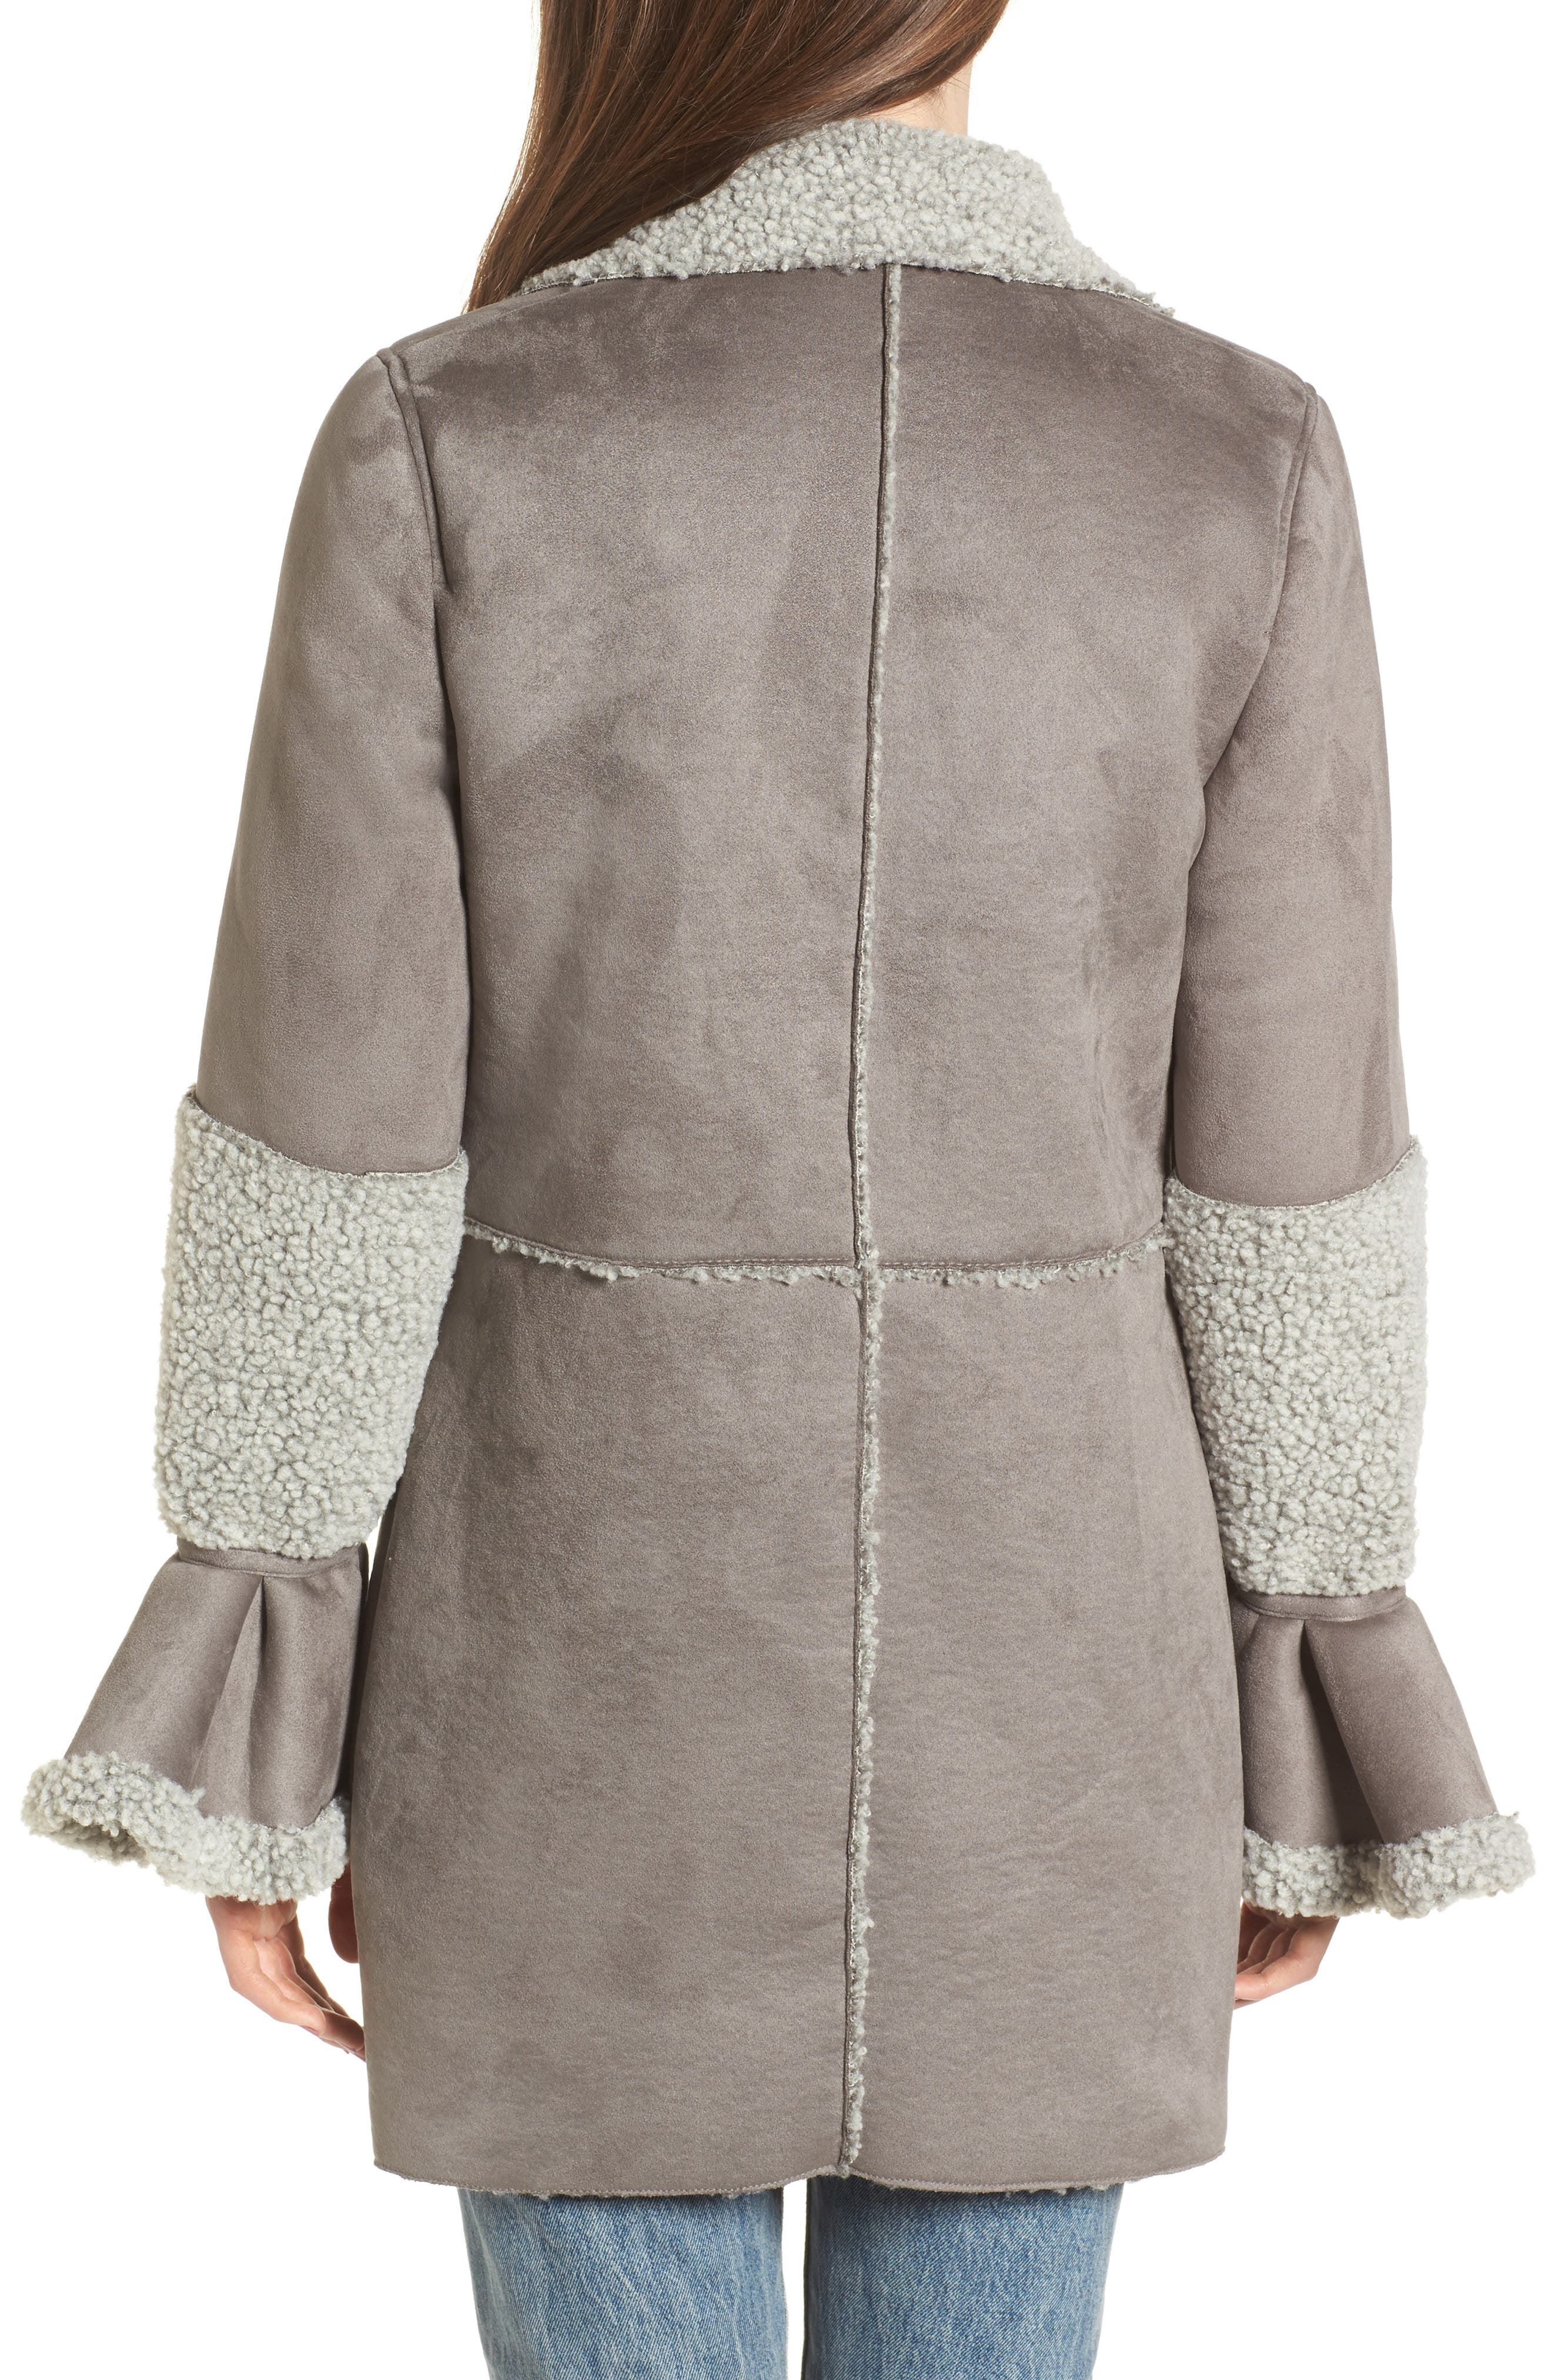 LOST INK,                             Faux Shearling Coat,                             Alternate thumbnail 2, color,                             020